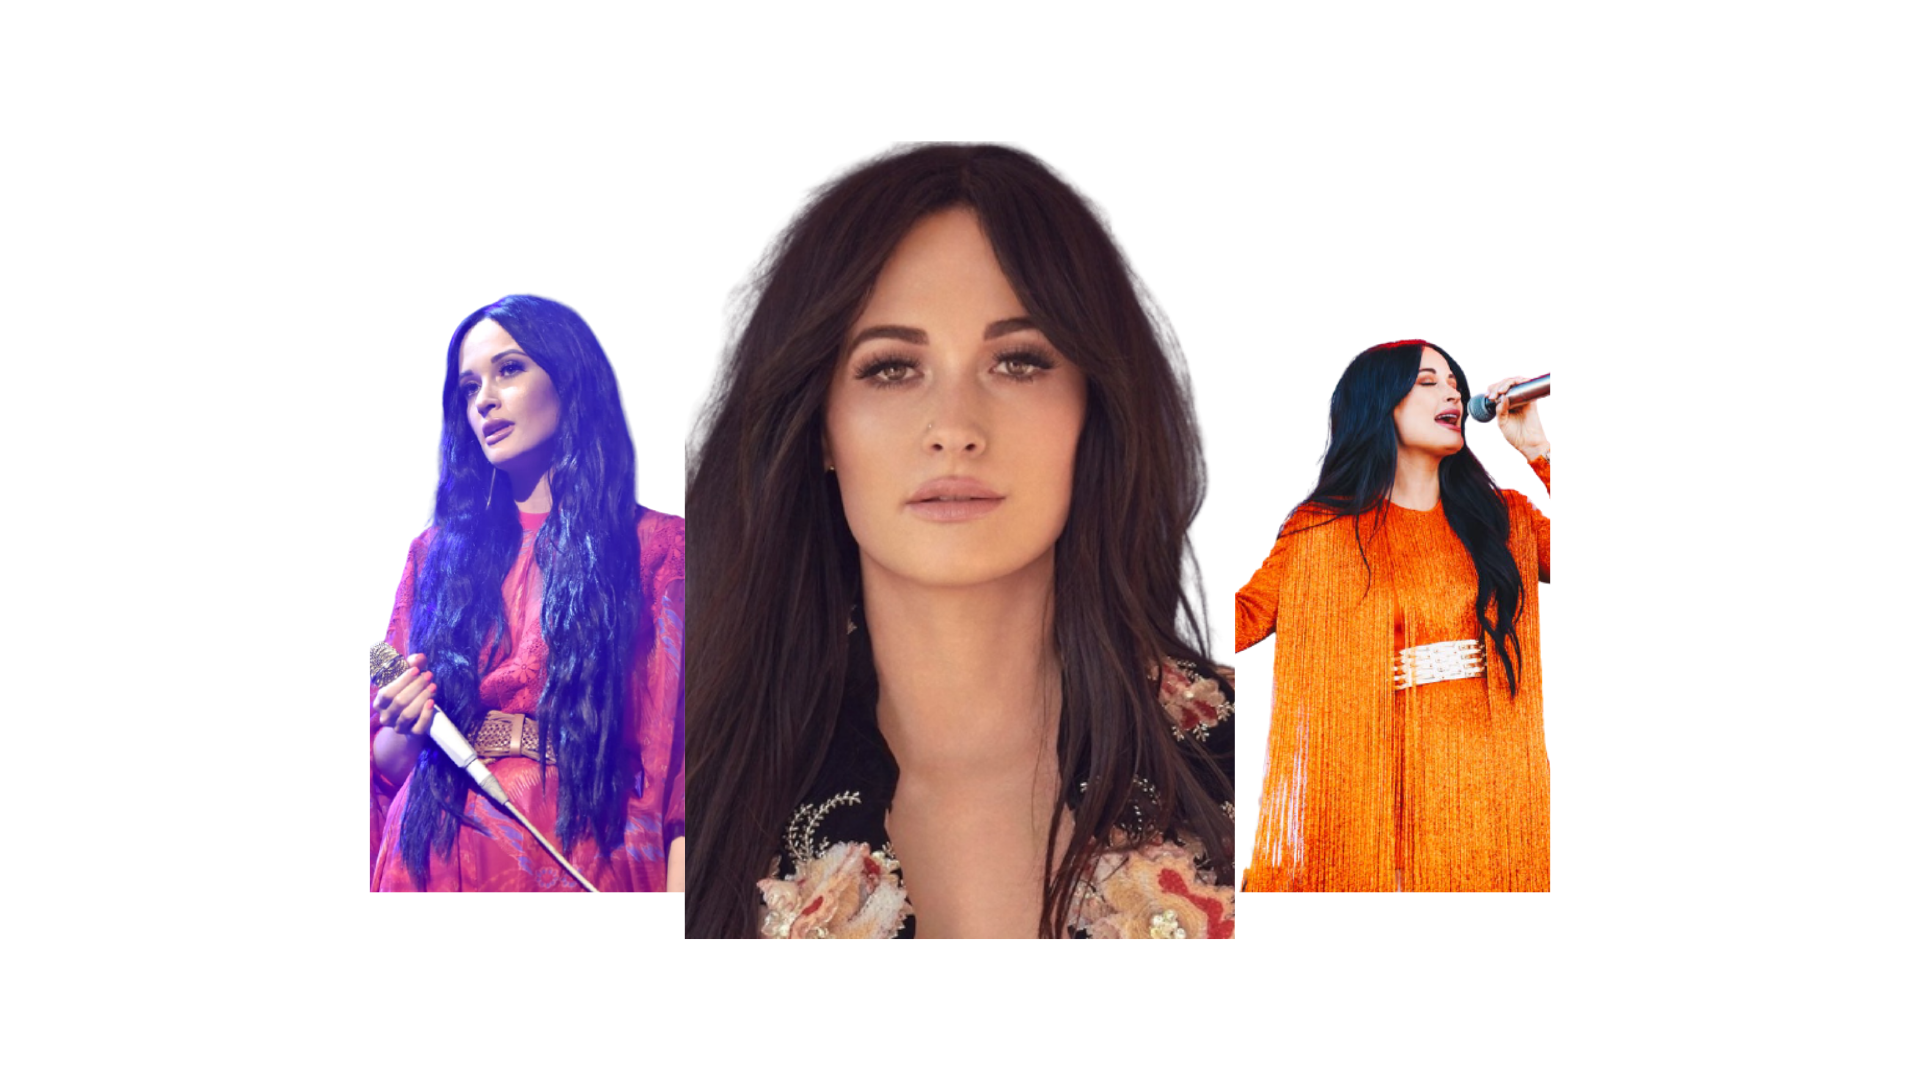 COWGIRL GUIDE: HOW TO BE A DIME STORE COWGIRL JUST LIKE OUR FAVORITE GLITTERY TEXAS COUNTRY STAR KACEY MUSGRAVES